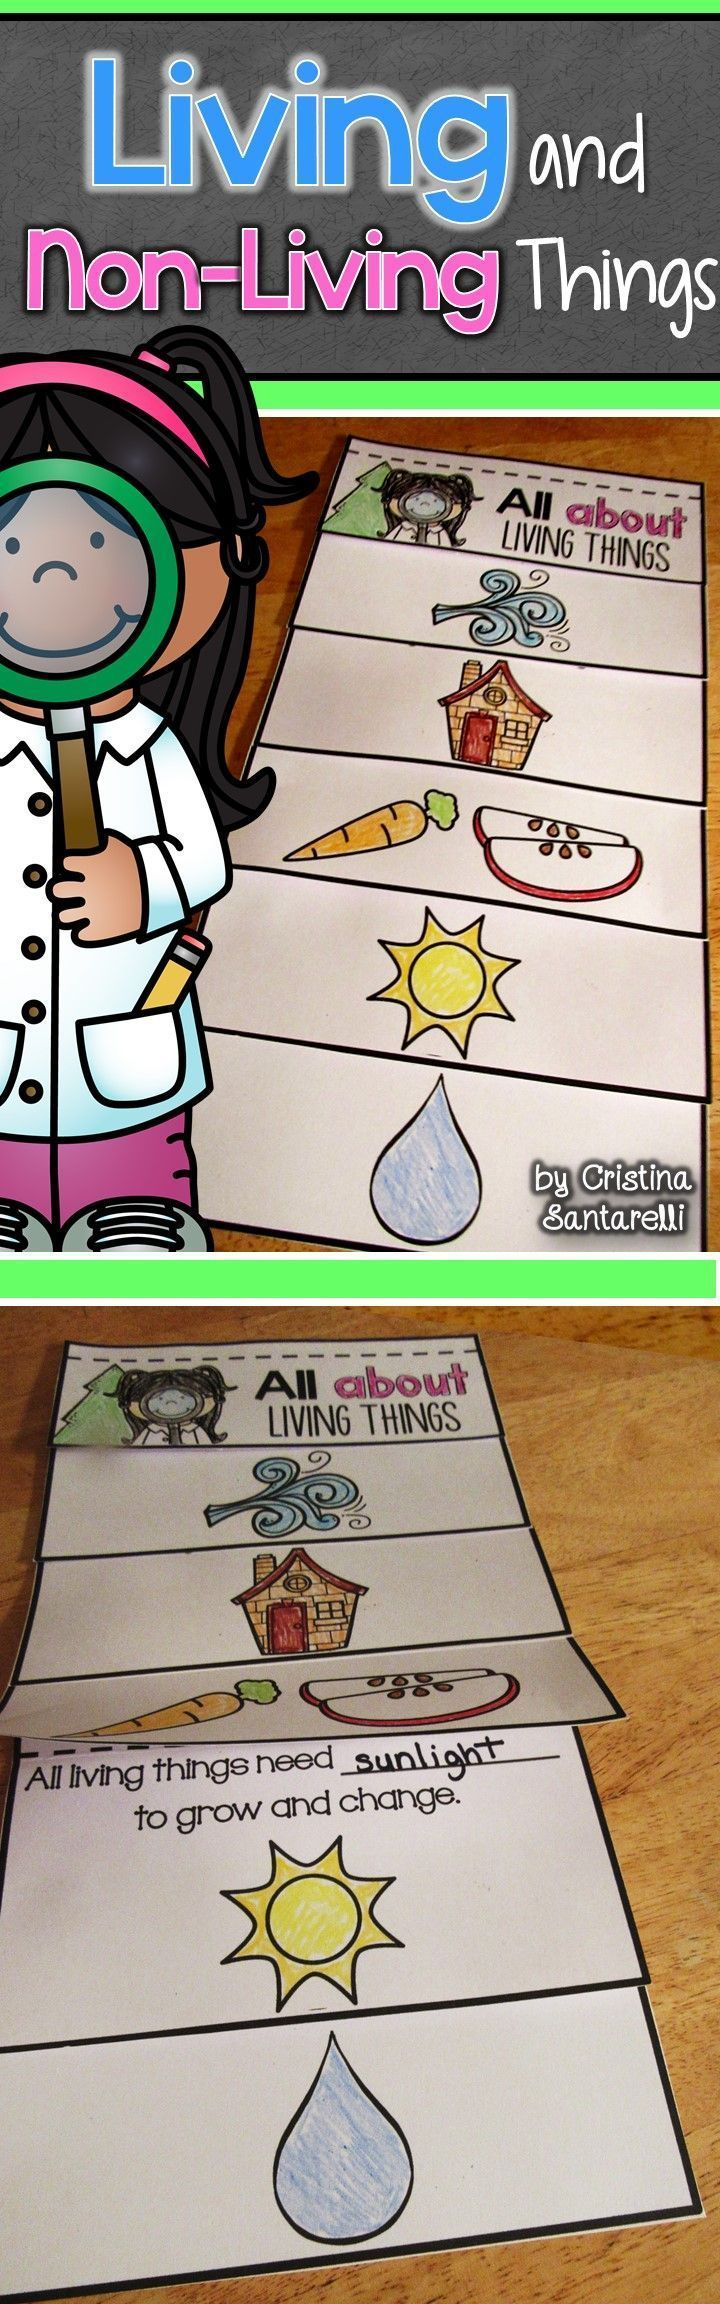 Living and non living things flip book activities chart and students living and non living things flip book ccuart Image collections